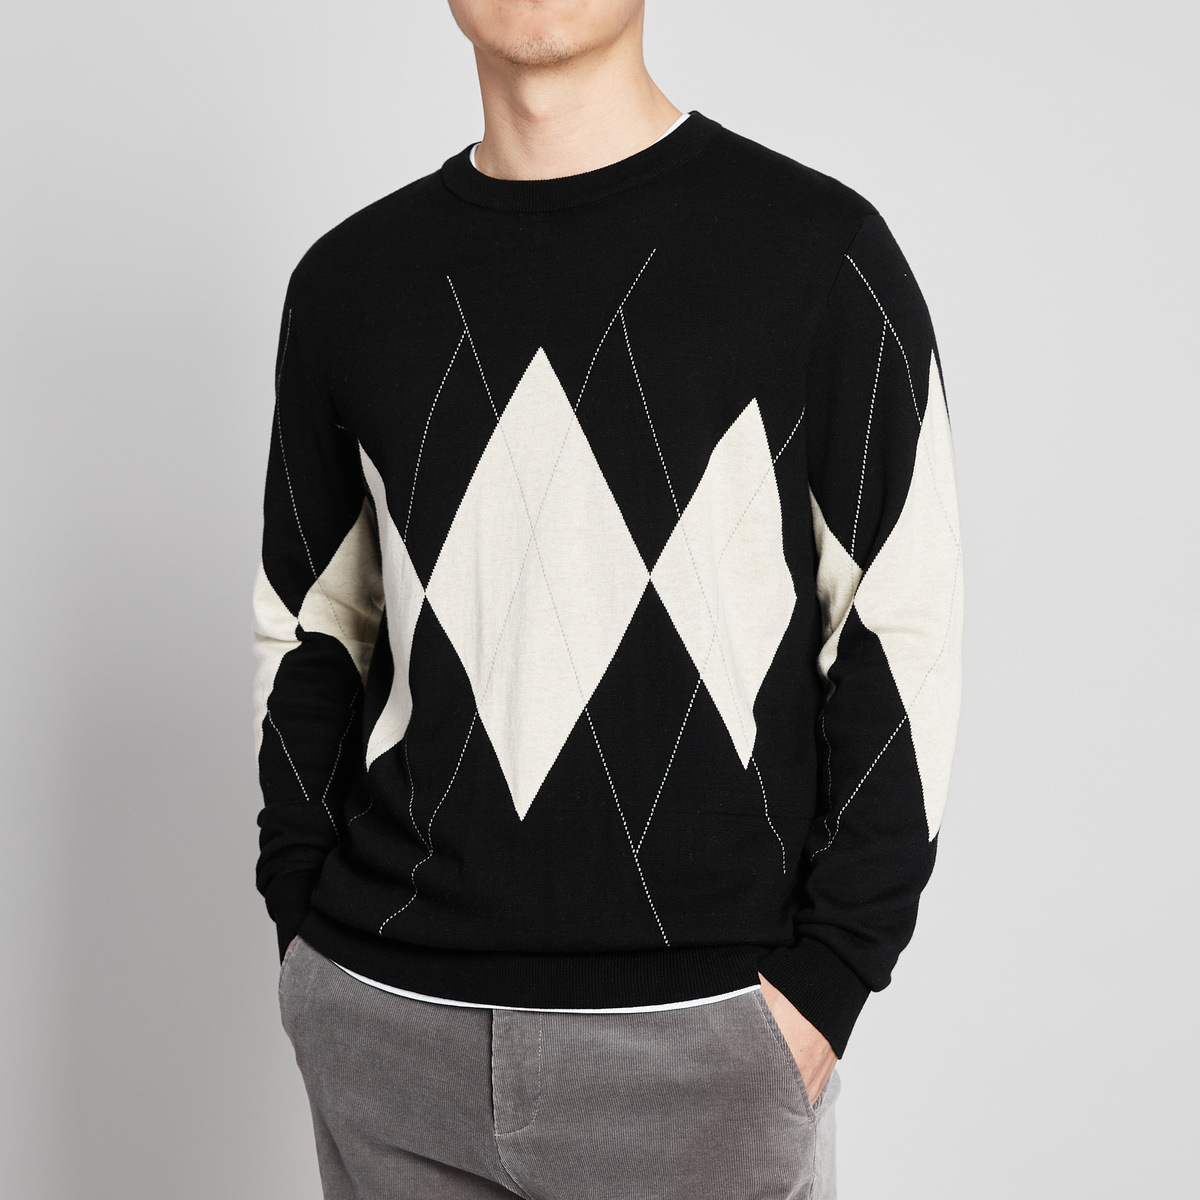 Autumn 2020 mens round neck knitwear micro drop shoulder diamond lattice jacquard sweater casual mens top 2392